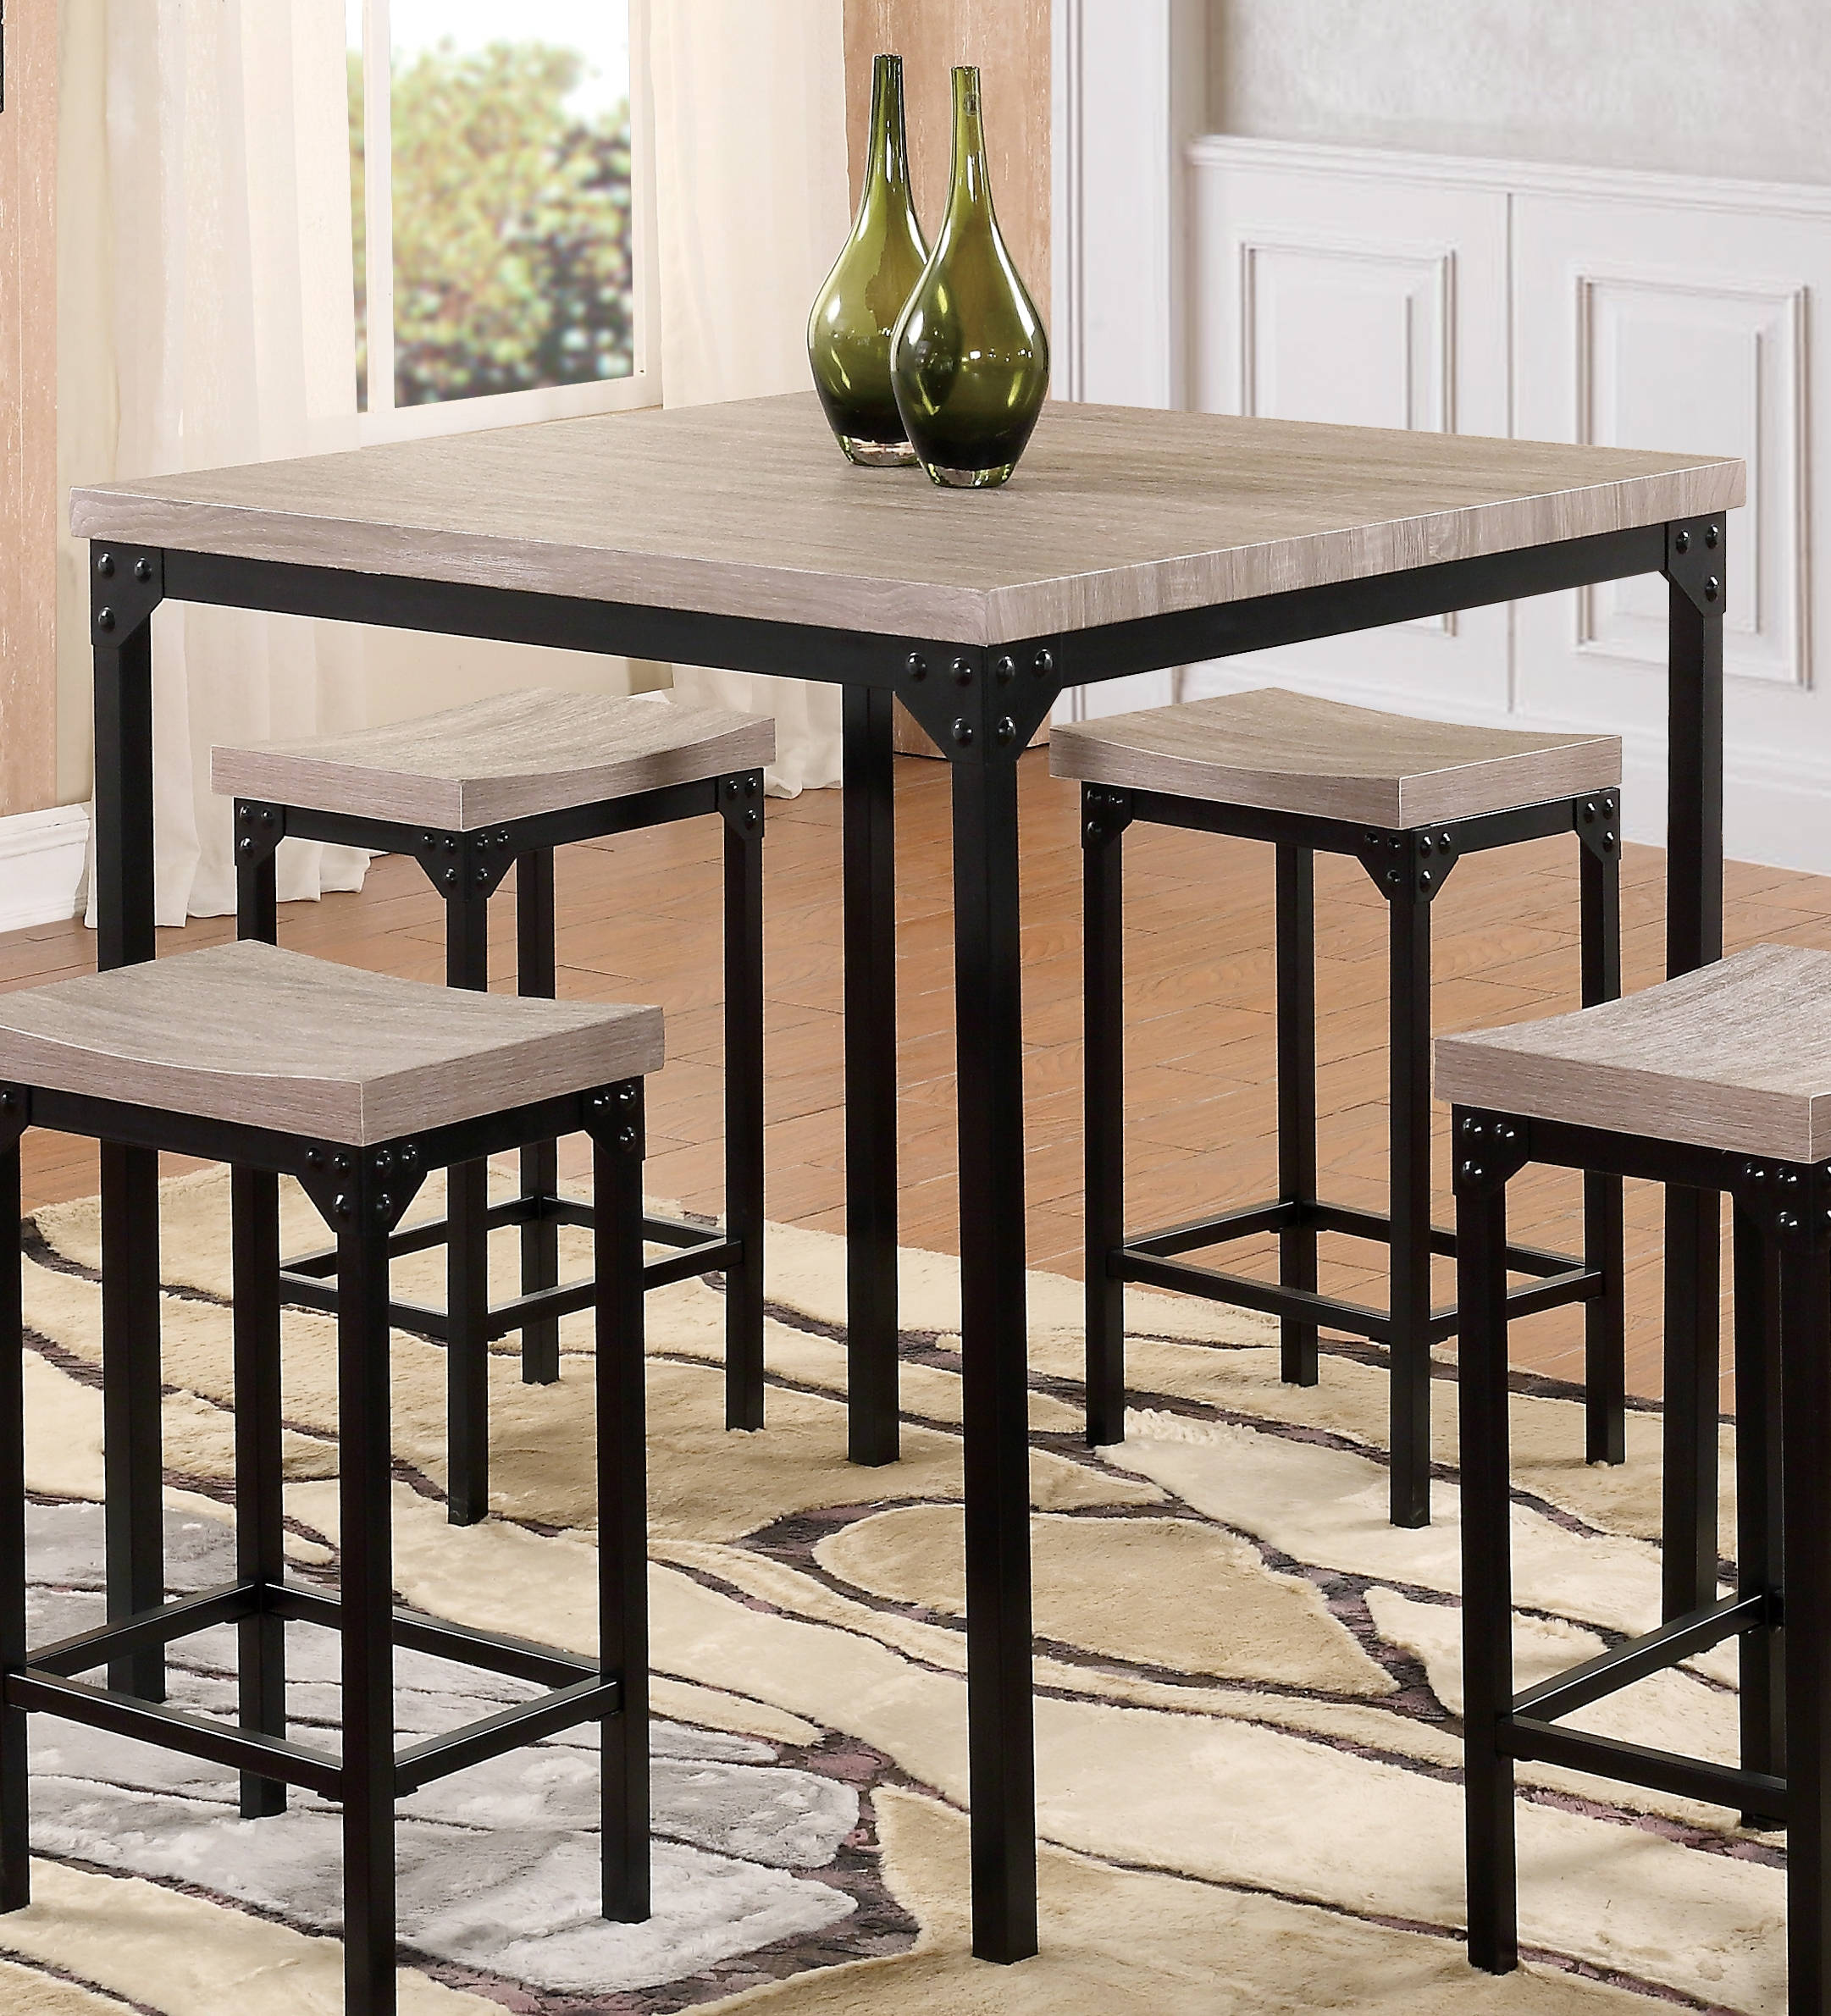 D188 Series Black Mdf Iron Bar Table The Cly Home